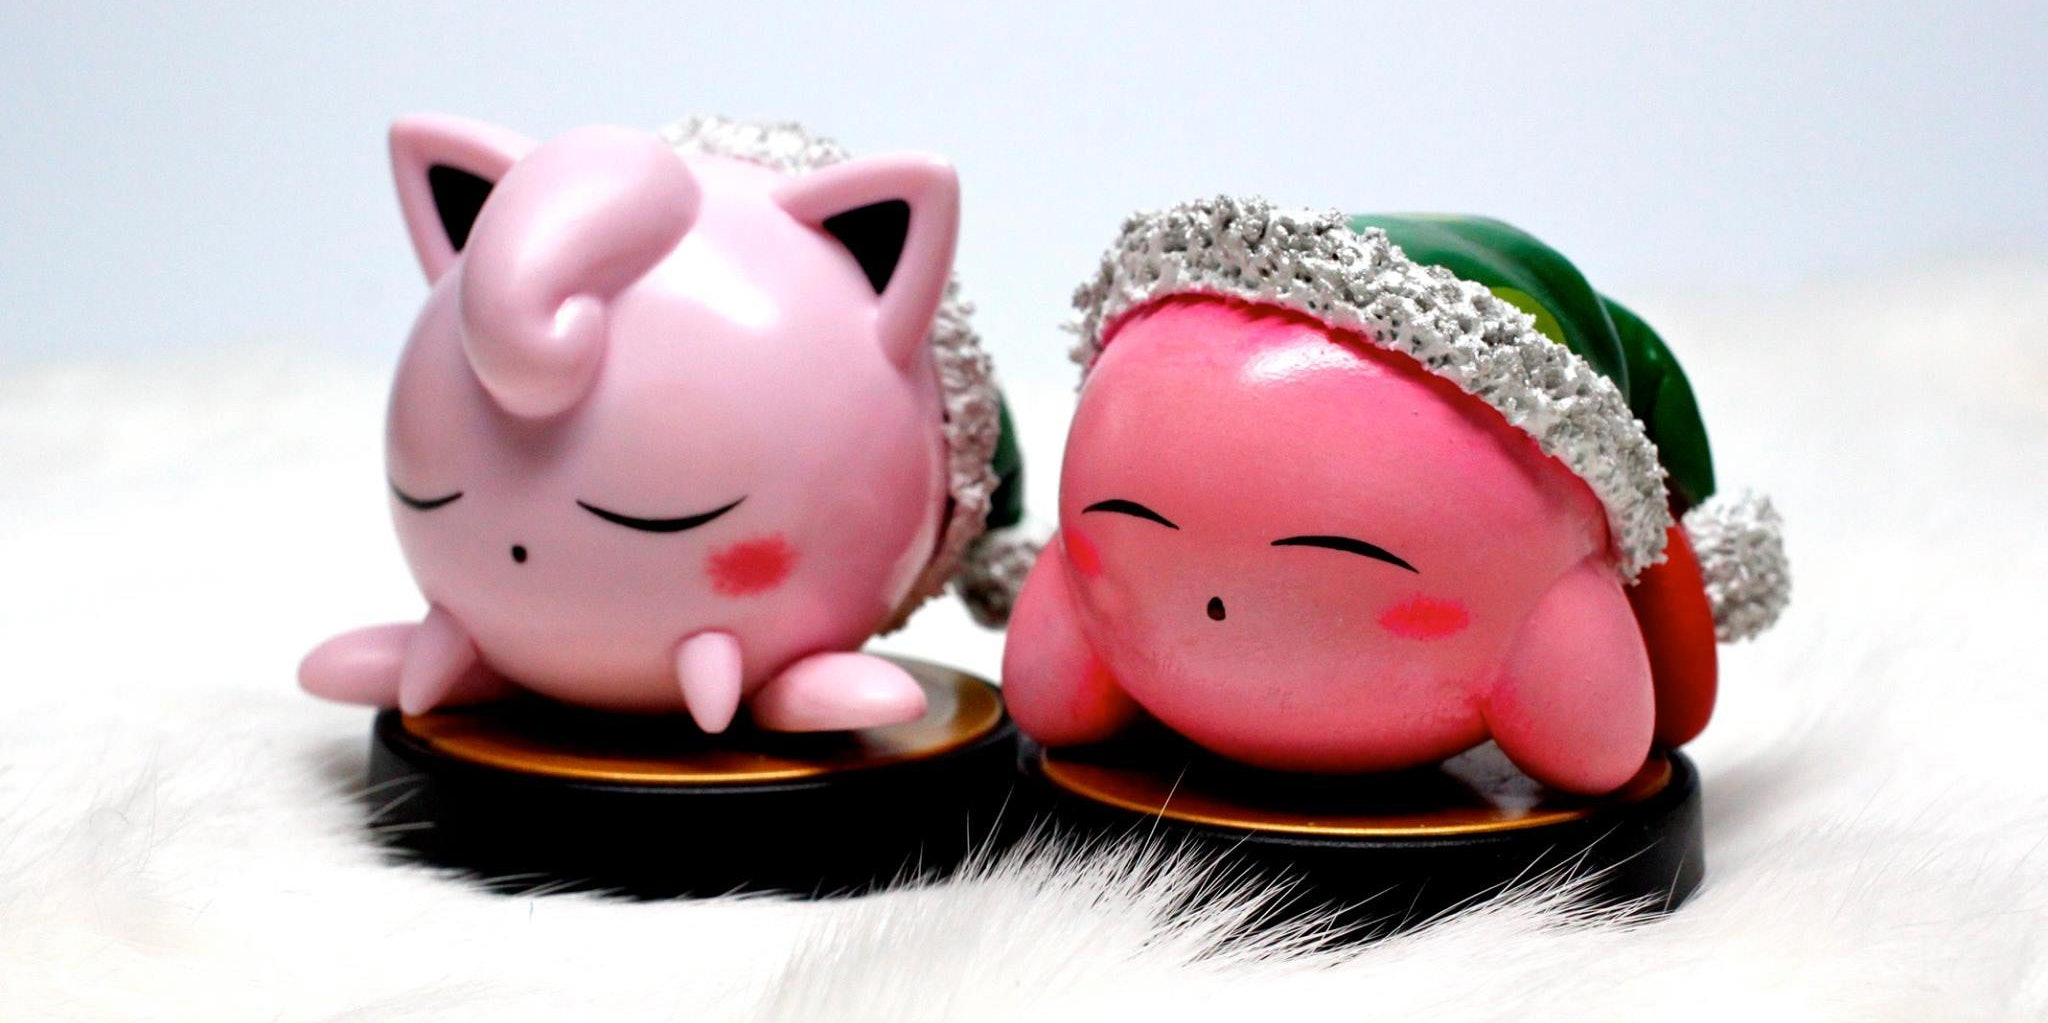 Sleepy Jigglypuff and Kirby are a good use of customs.